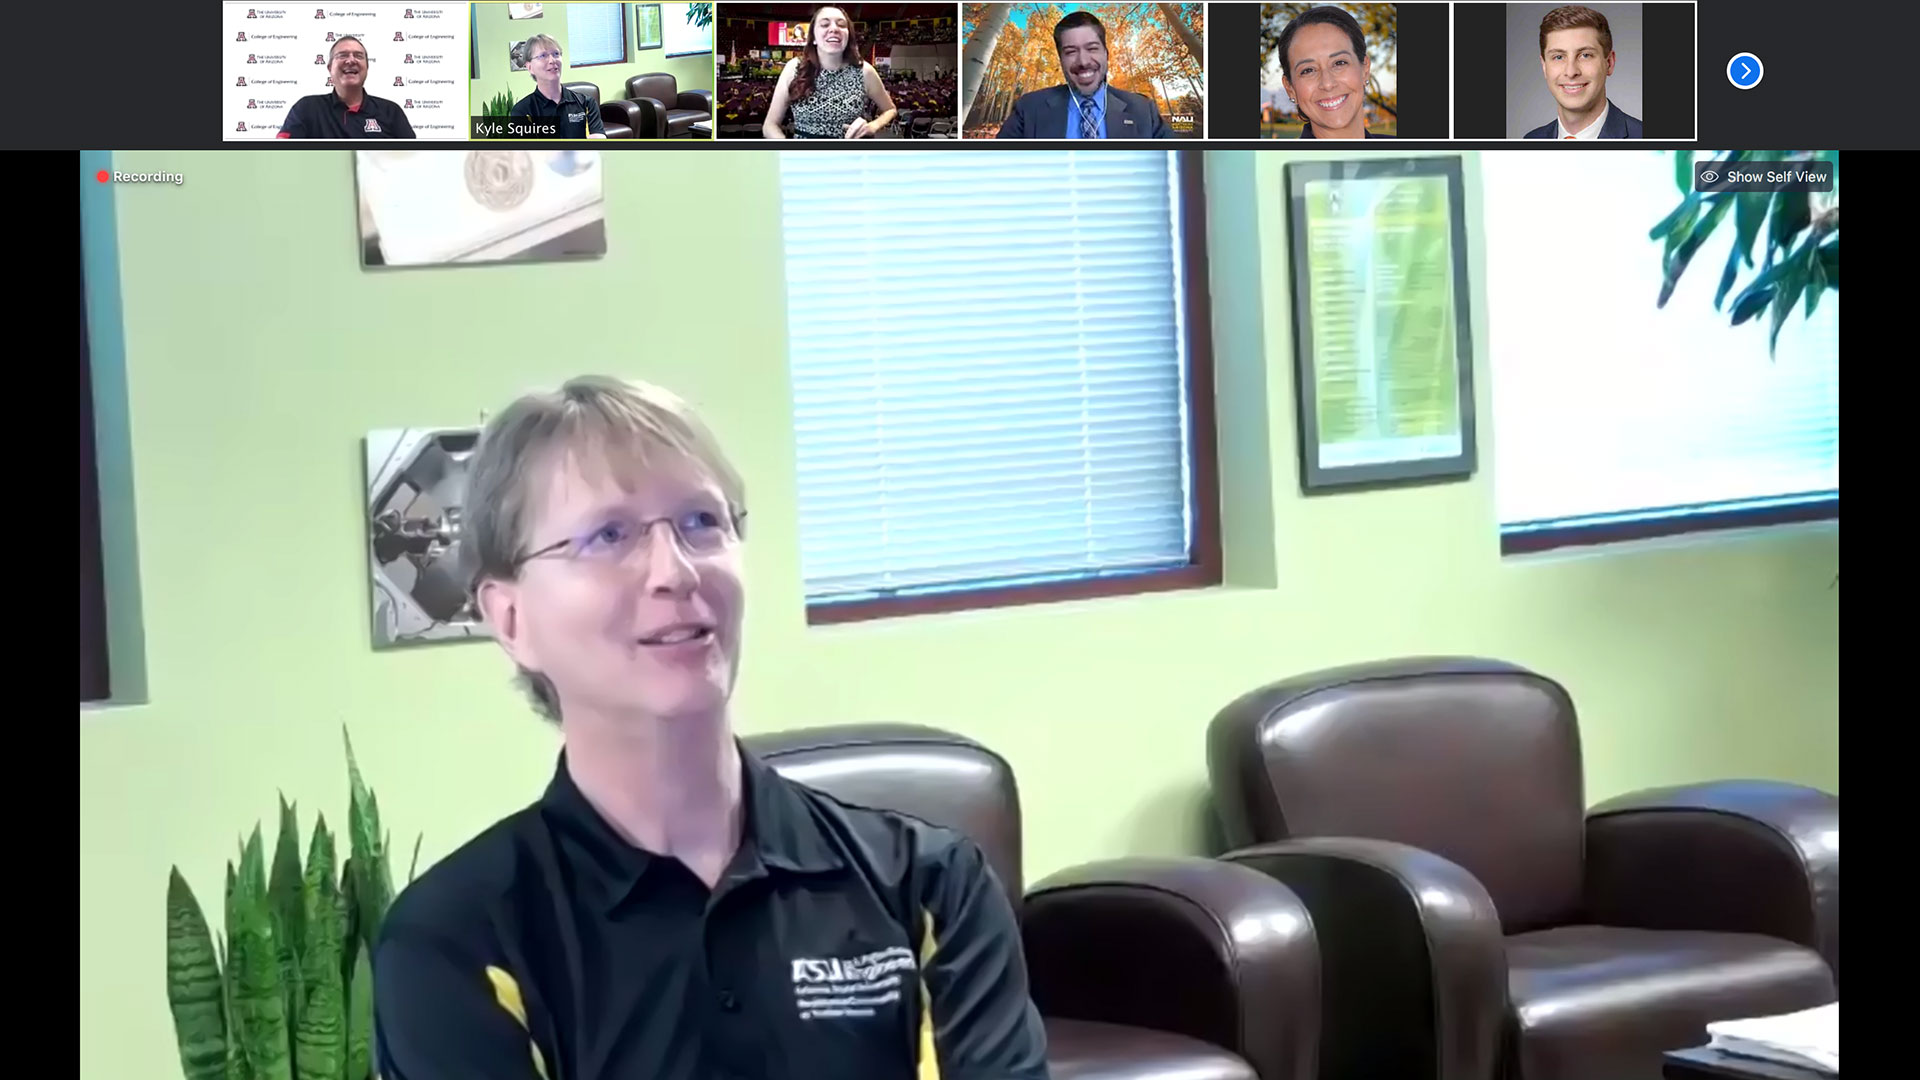 Arizona State University's Kyle Squires speaks during The Challenge online panel of Arizona university deans.